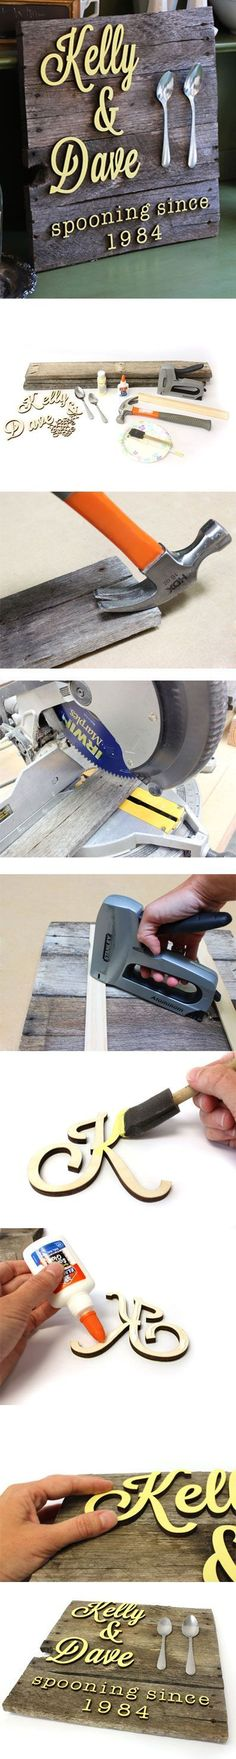 Plans of Woodworking Diy Projects - The Most Beautiful 101 DIY Pallet Projects To Take On Get A Lifetime Of Project Ideas & Inspiration! Pallet Ideas, Pallet Crafts, Pallet Art, Diy Pallet Projects, Pallet Signs, Woodworking Projects Diy, Wood Crafts, Woodworking Plans, Wood Projects